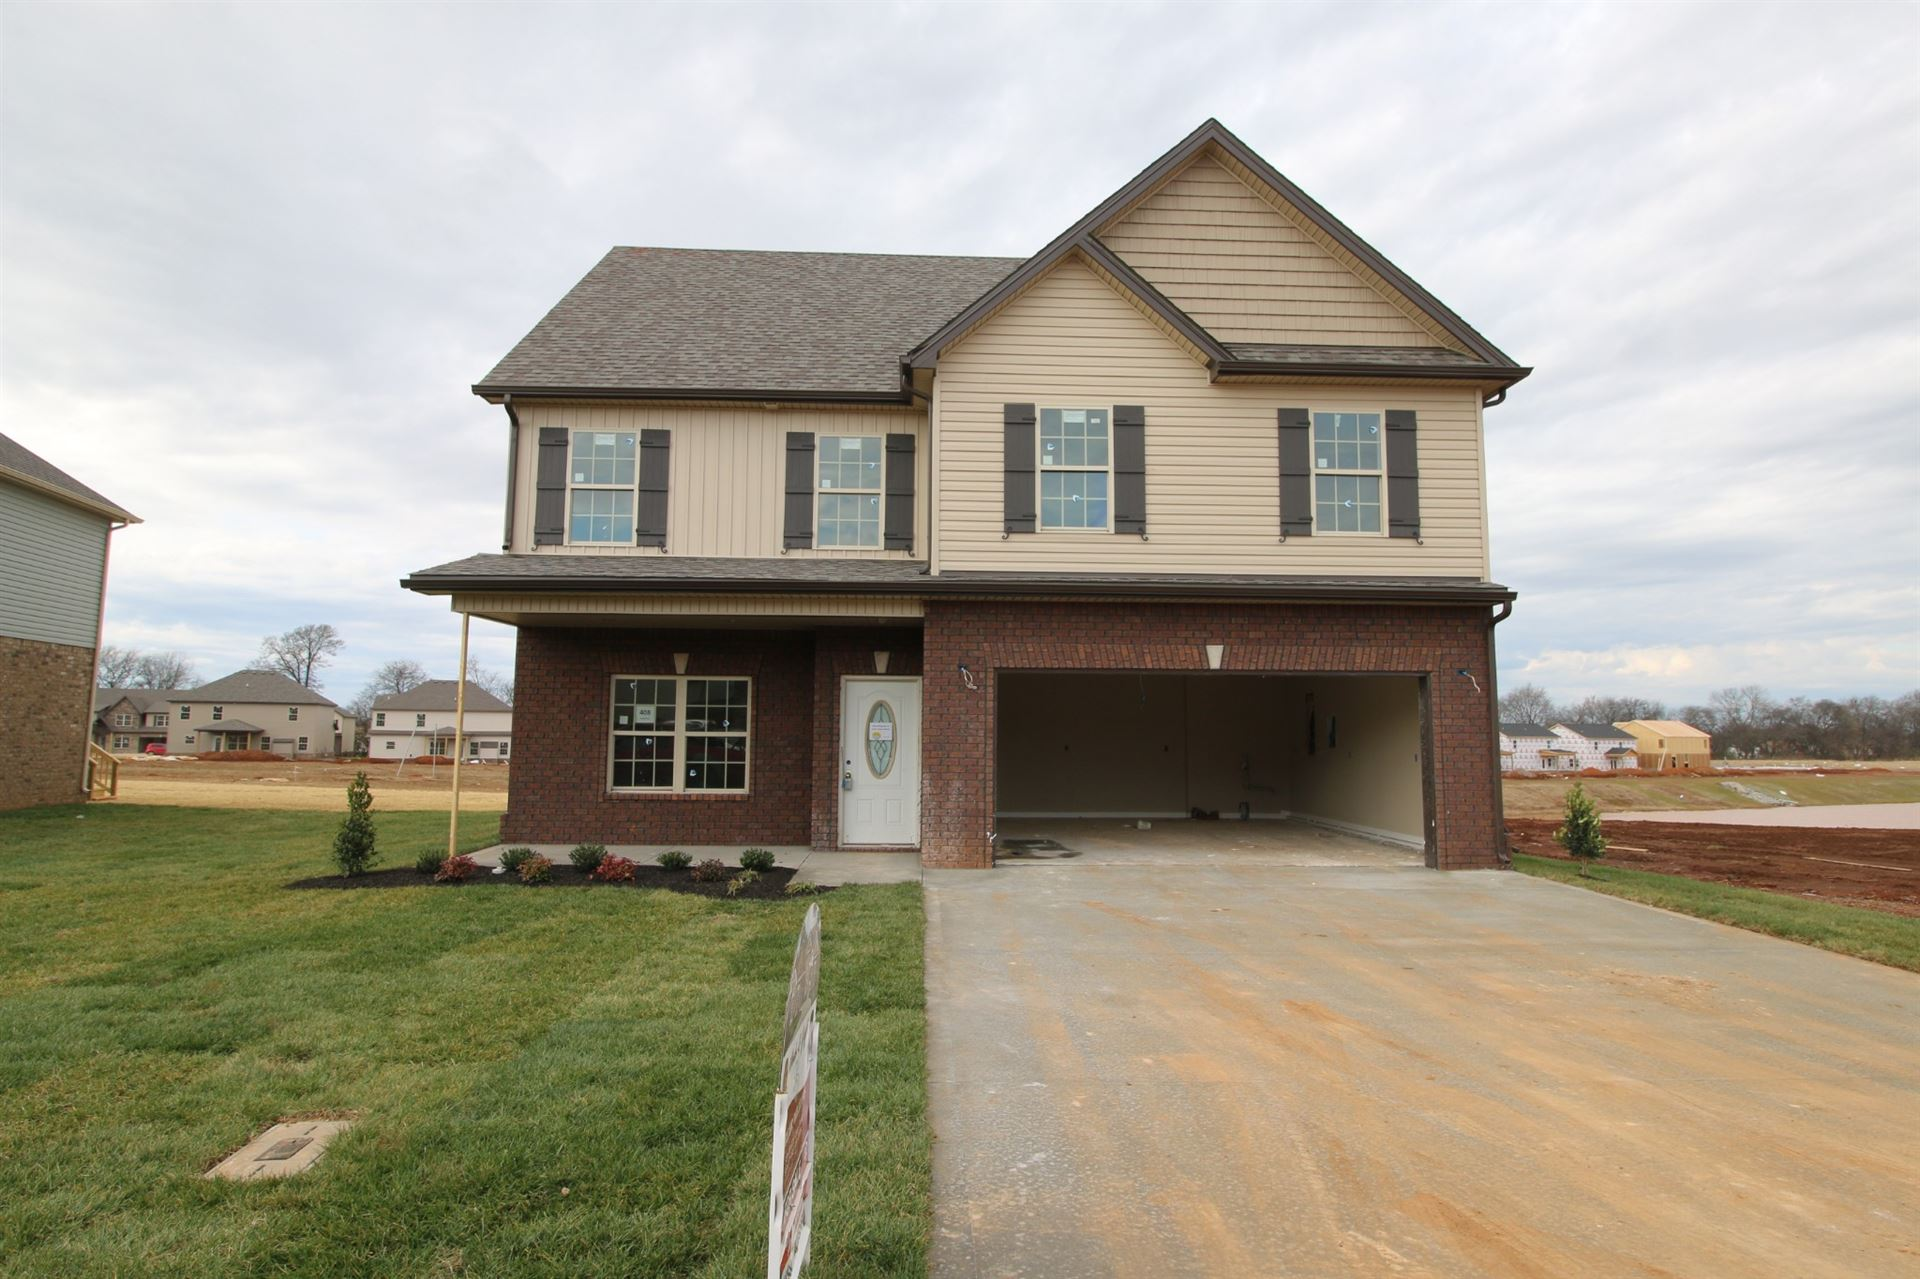 408 Summerfield, Clarksville, TN 37040 - MLS#: 2196734